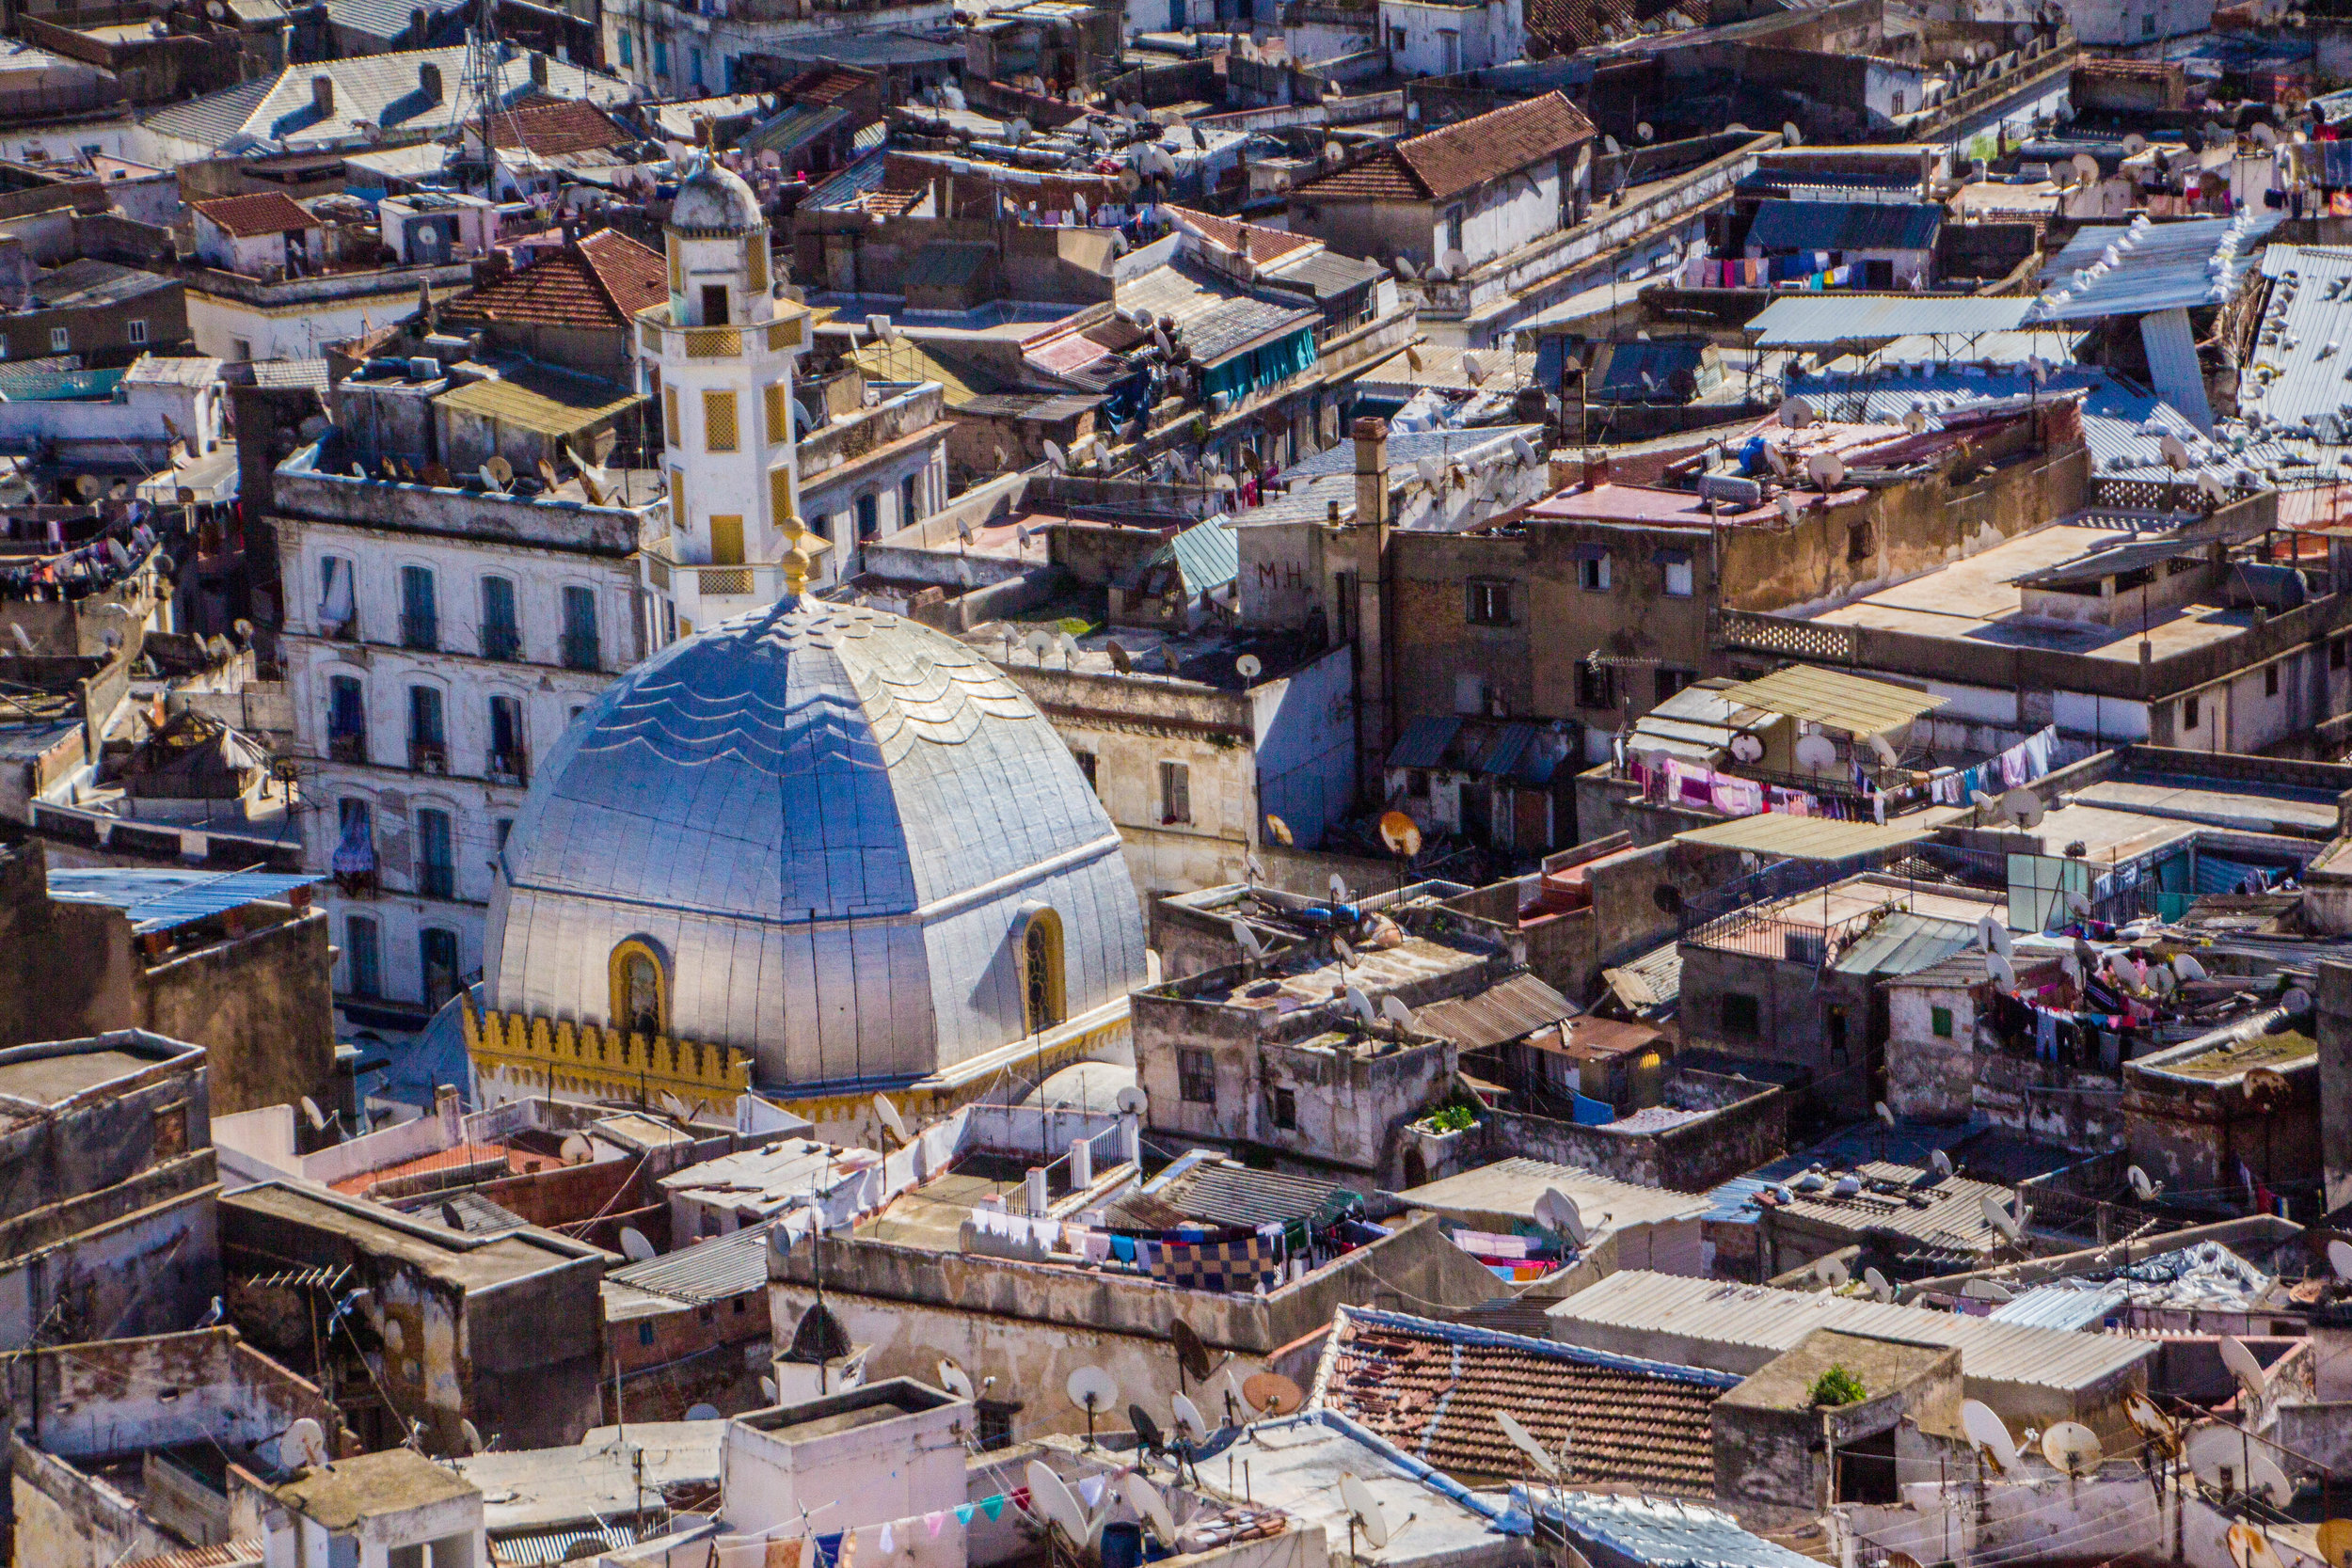 casbah-from-above-algiers-algeria-15.jpg